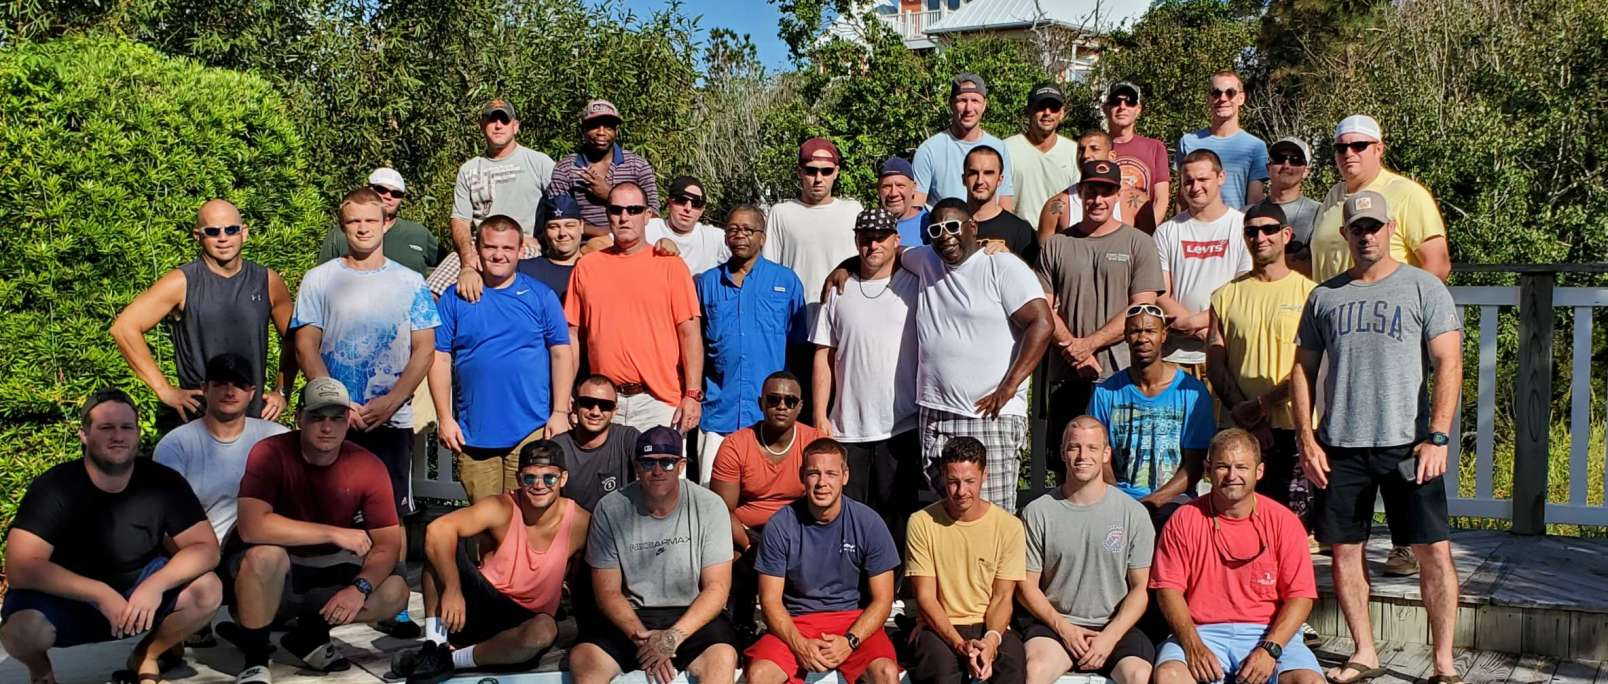 mens treatment center group therapy trip summer 2019 north carolina